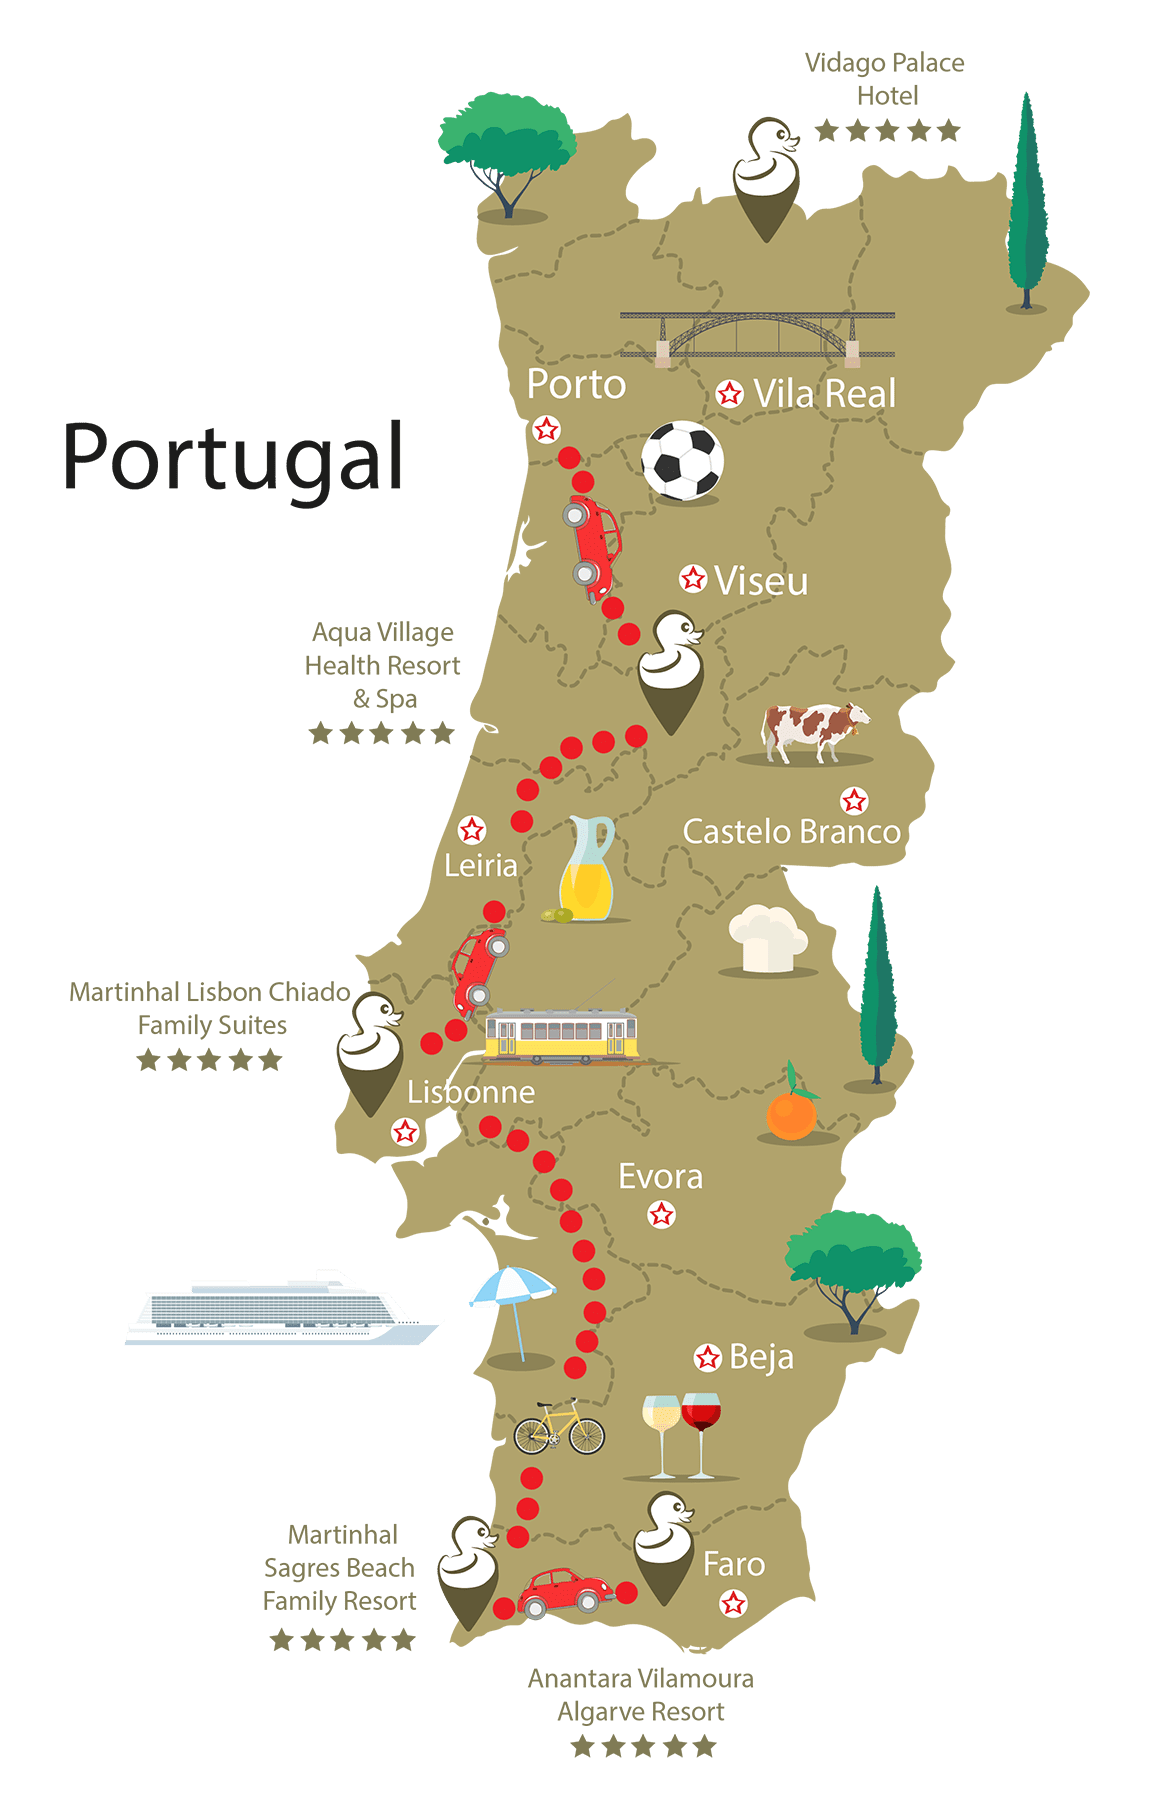 Little Guest Hotels Collection Portugal Tour Guide